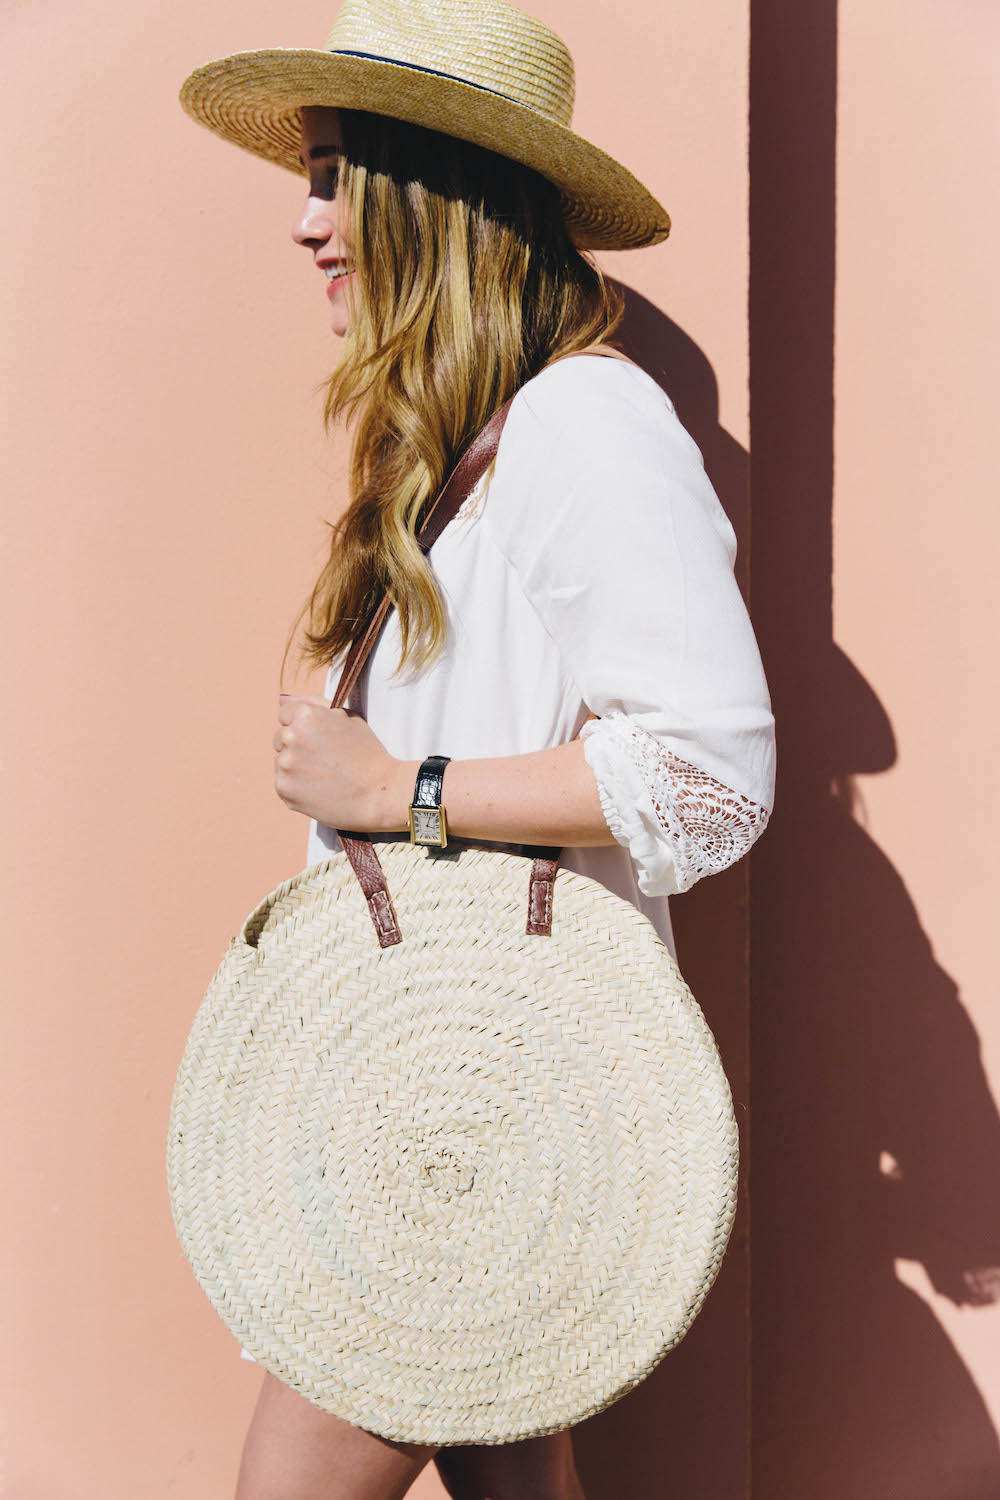 joie tabara dress, lemon stripes x hat attach hat, frenchbaskets round basket bag | grace atwood, the stripe